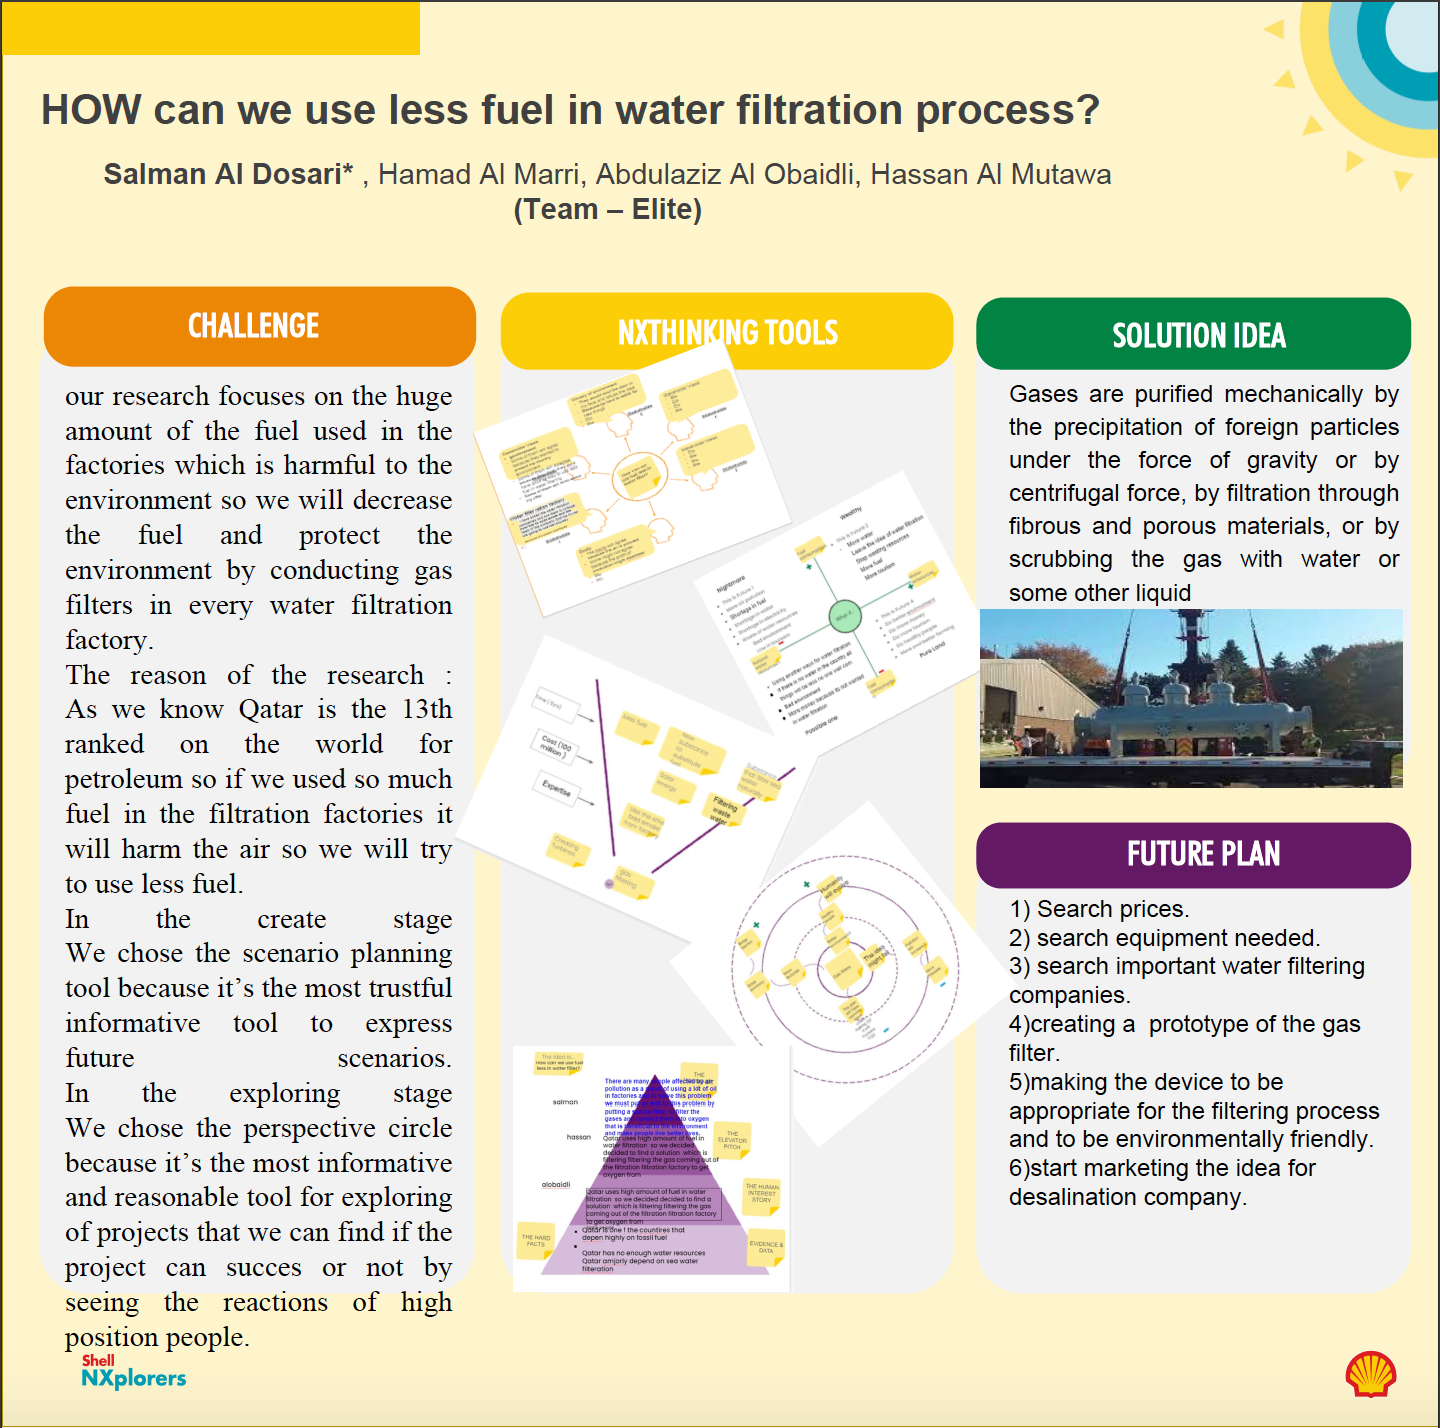 How can we use less fuel in water filtration process?